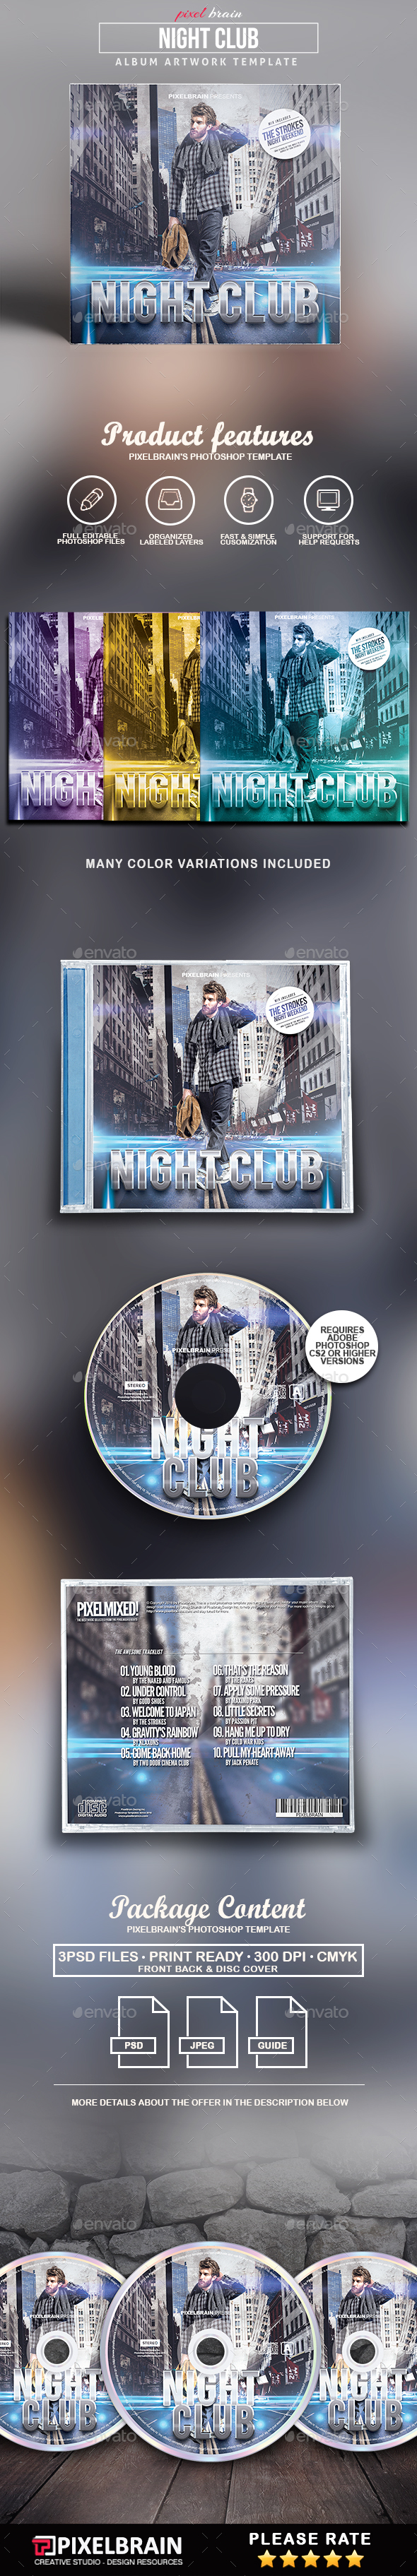 Night Club CD Cover Artwork - CD & DVD Artwork Print Templates